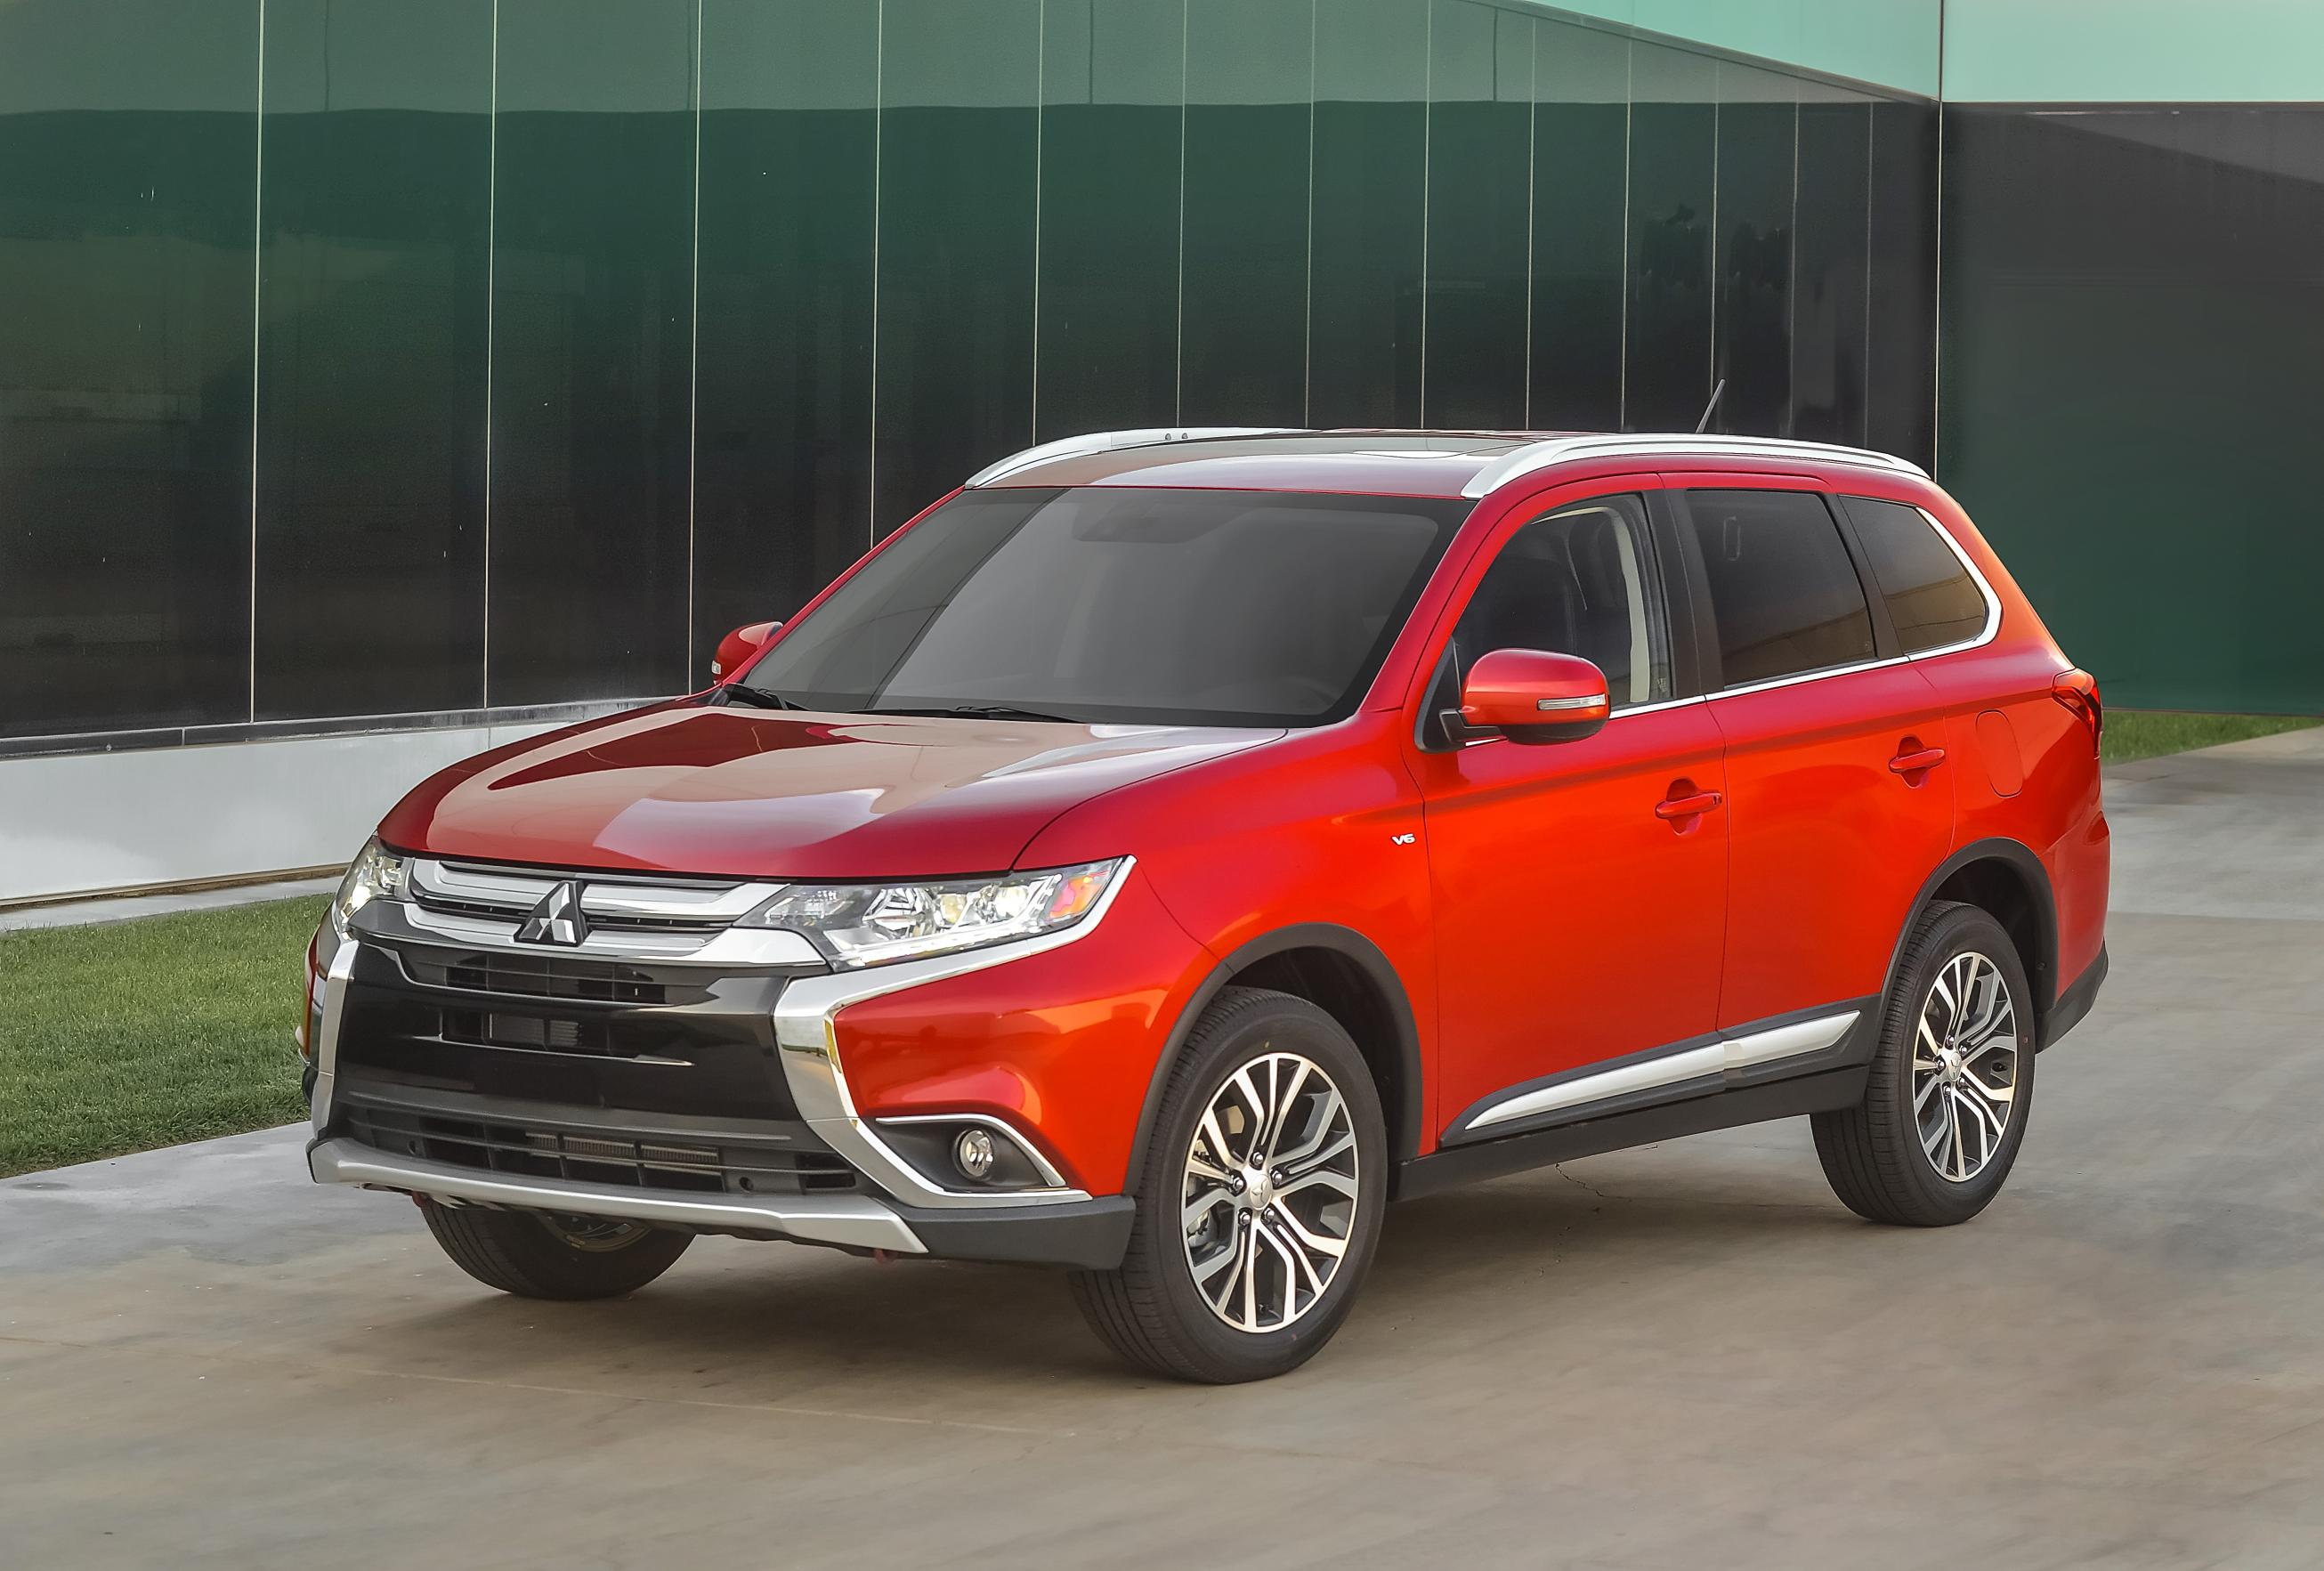 2016 mitsubishi asx pictures information and specs. Black Bedroom Furniture Sets. Home Design Ideas